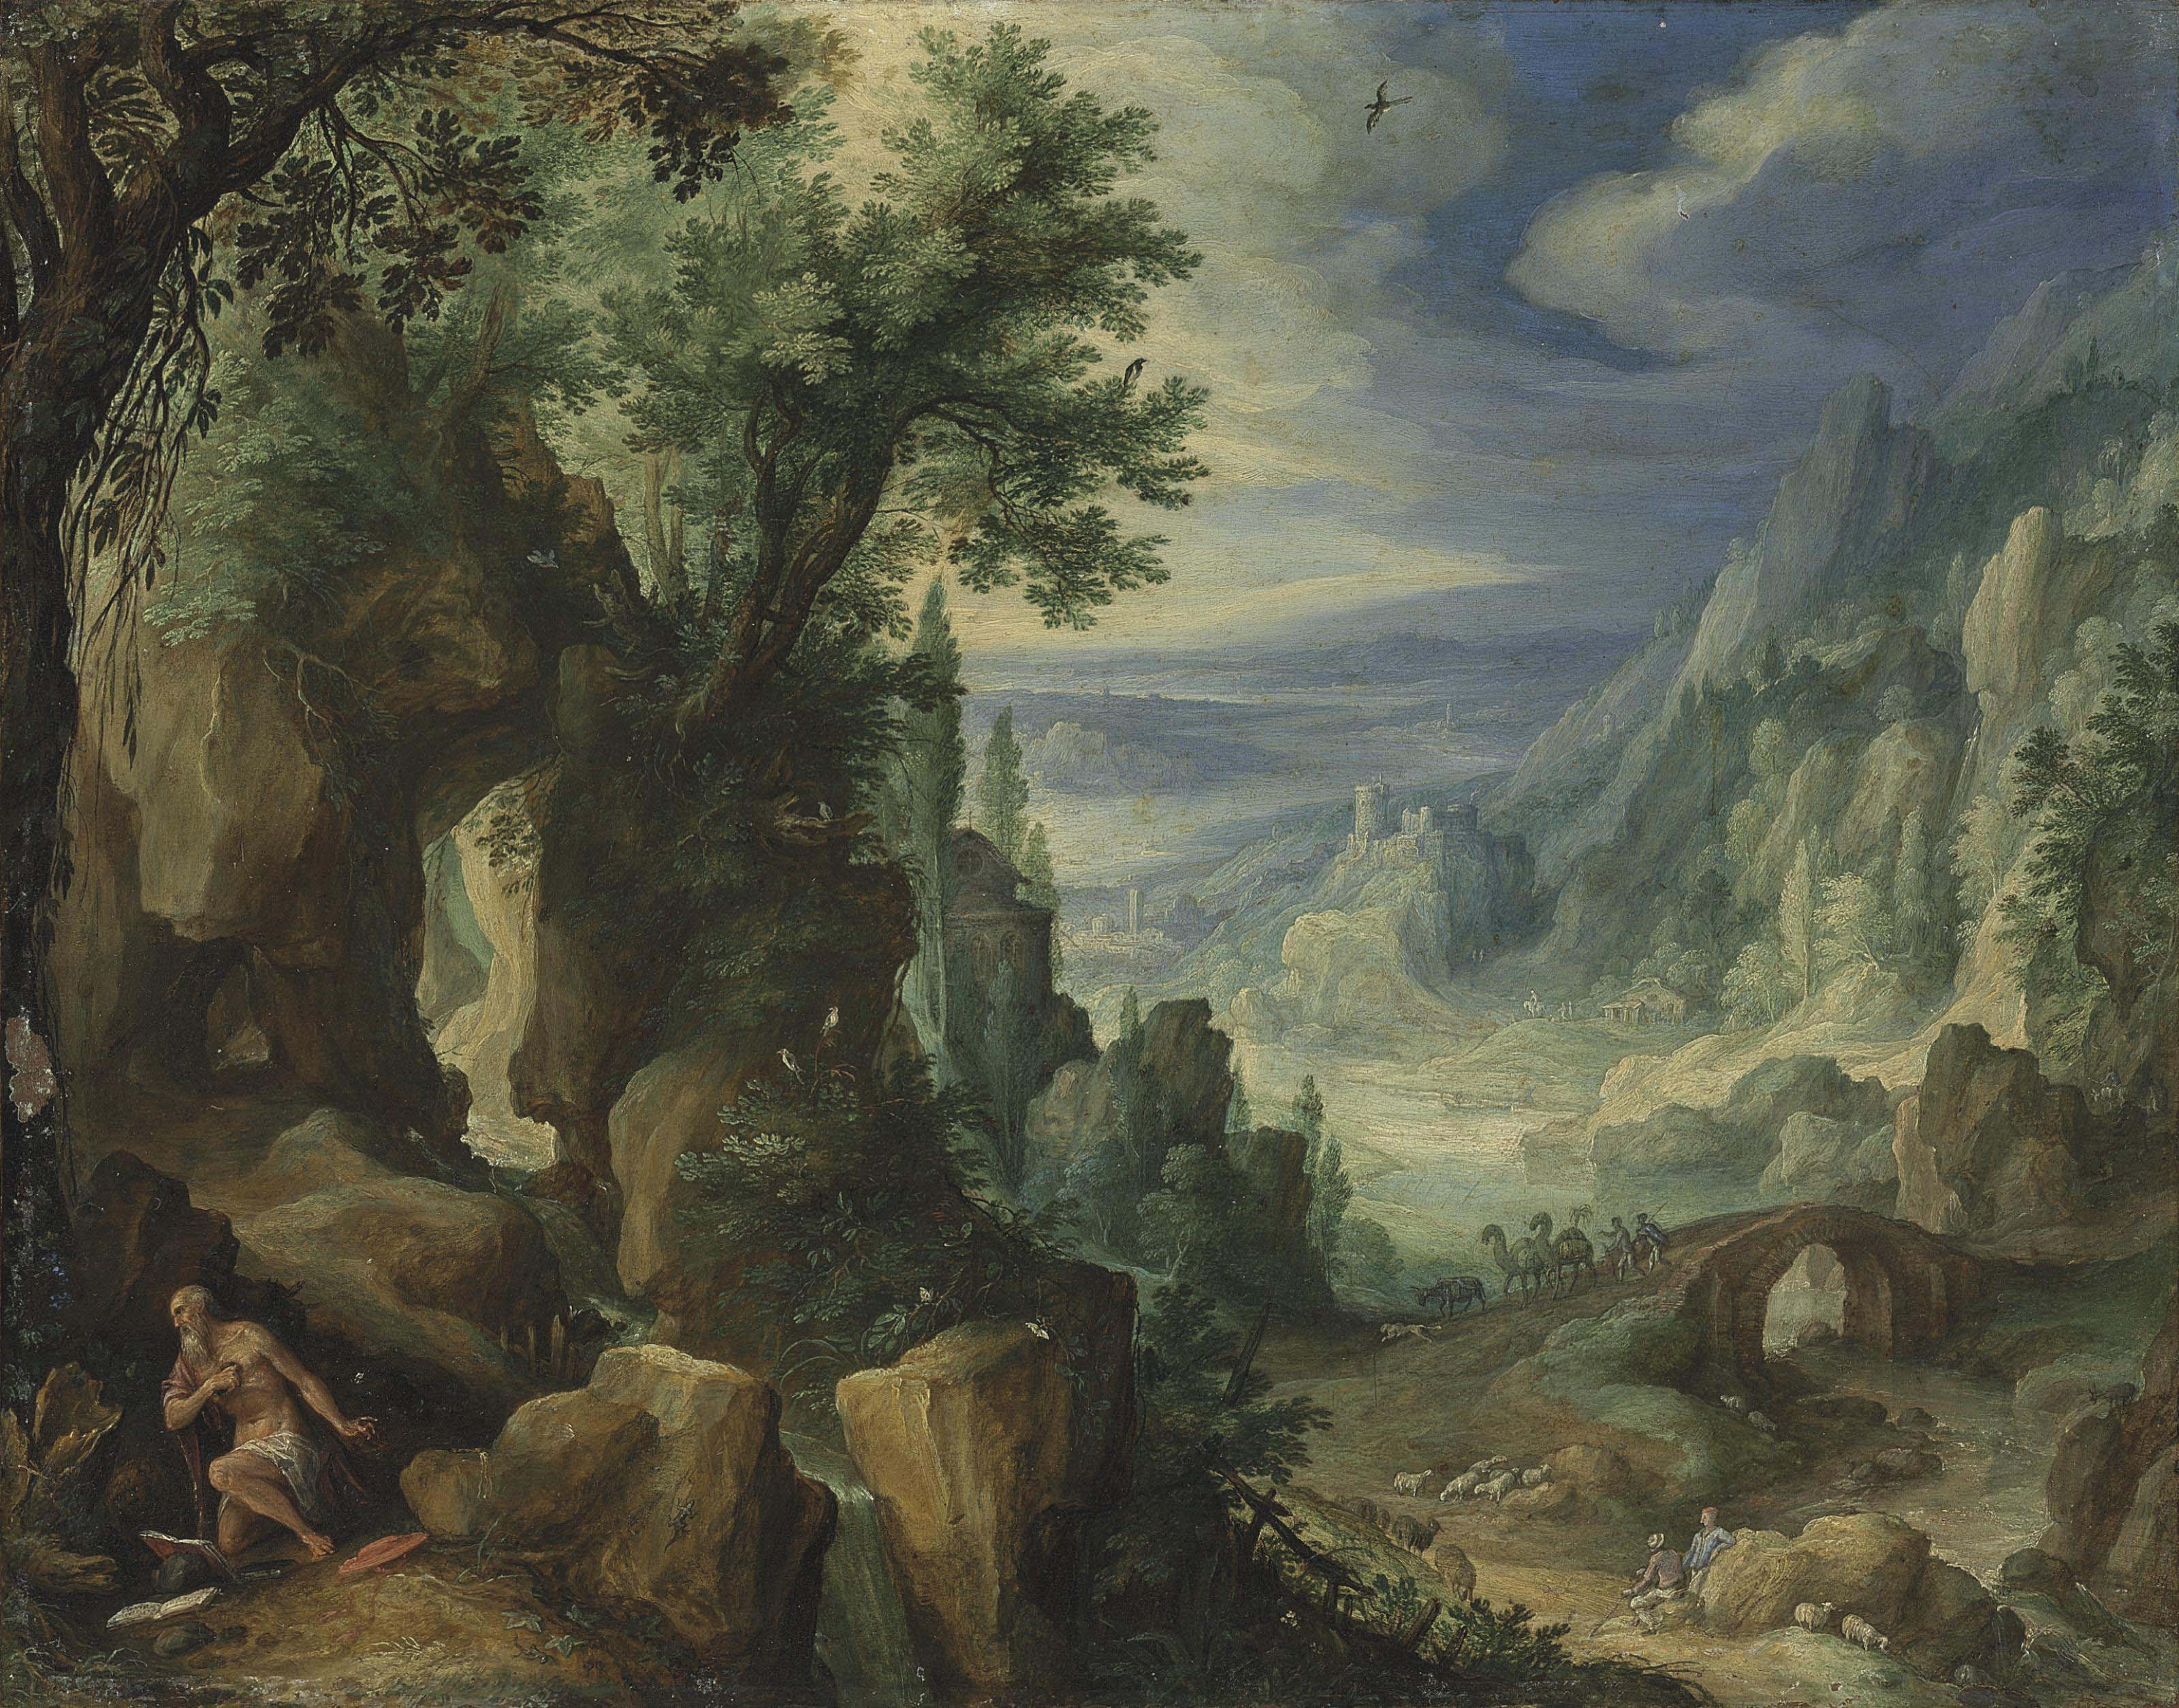 Saint Jerome praying in a rocky landscape